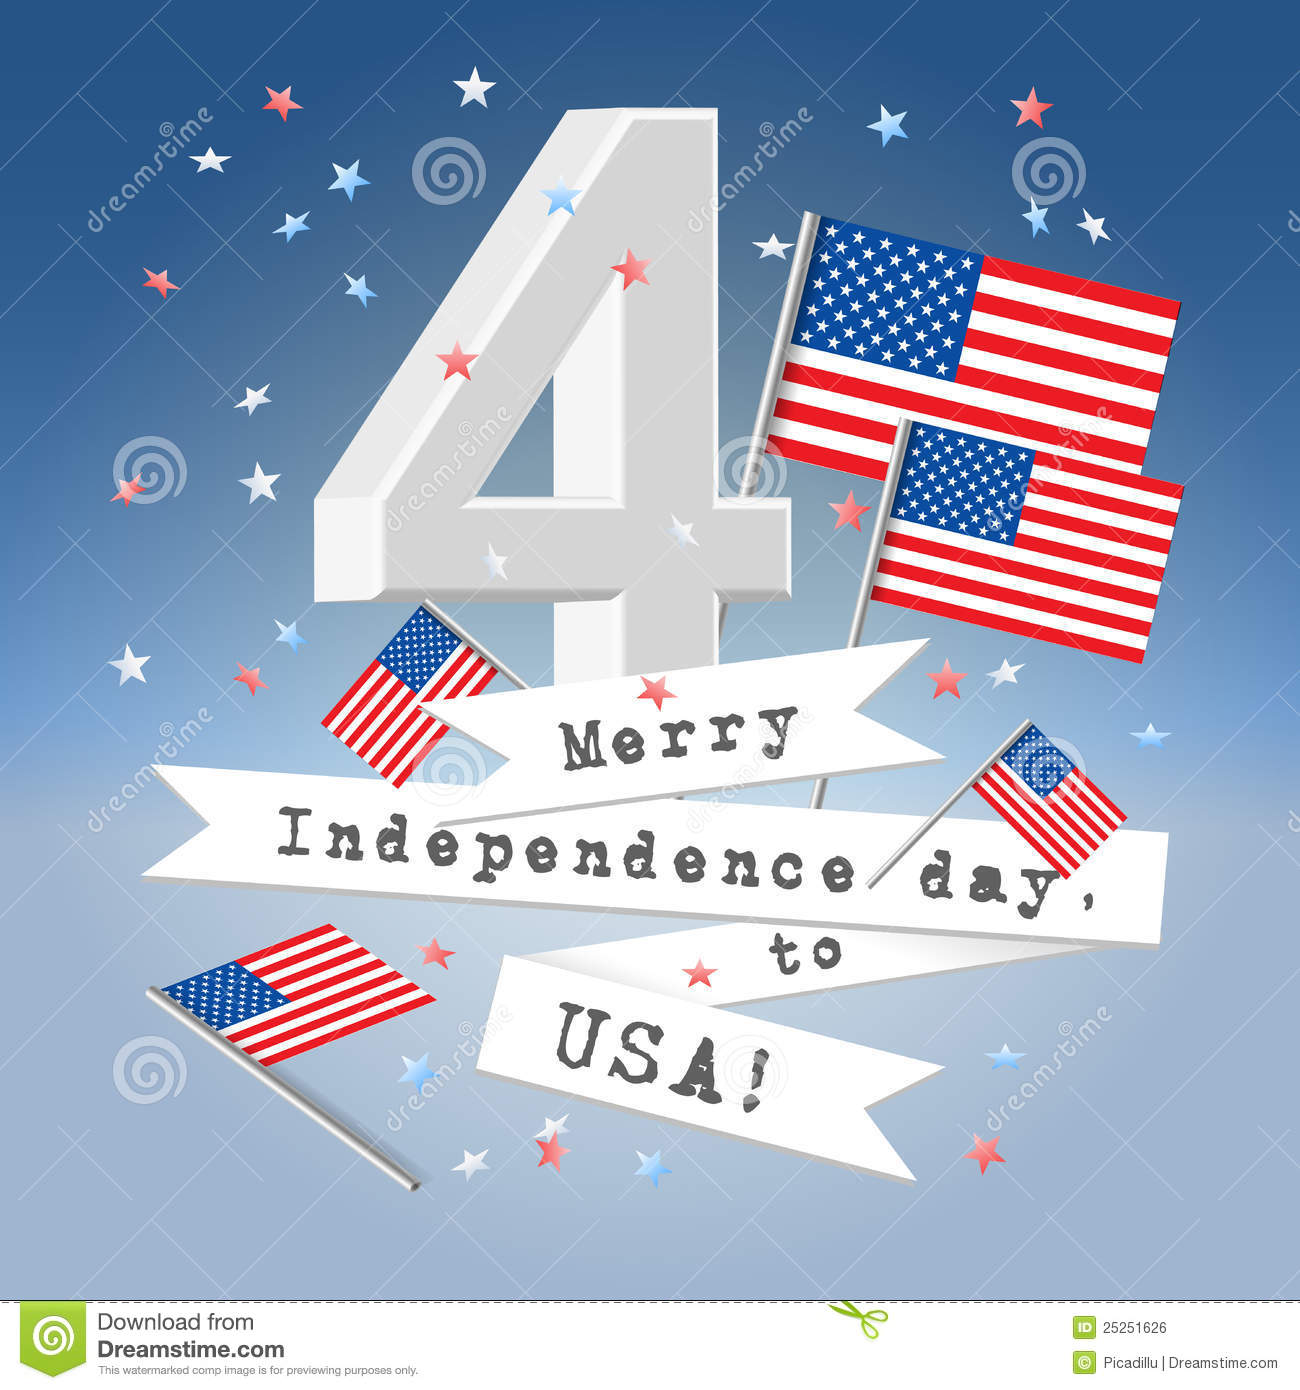 Festive usa independence day greeting card stock vector